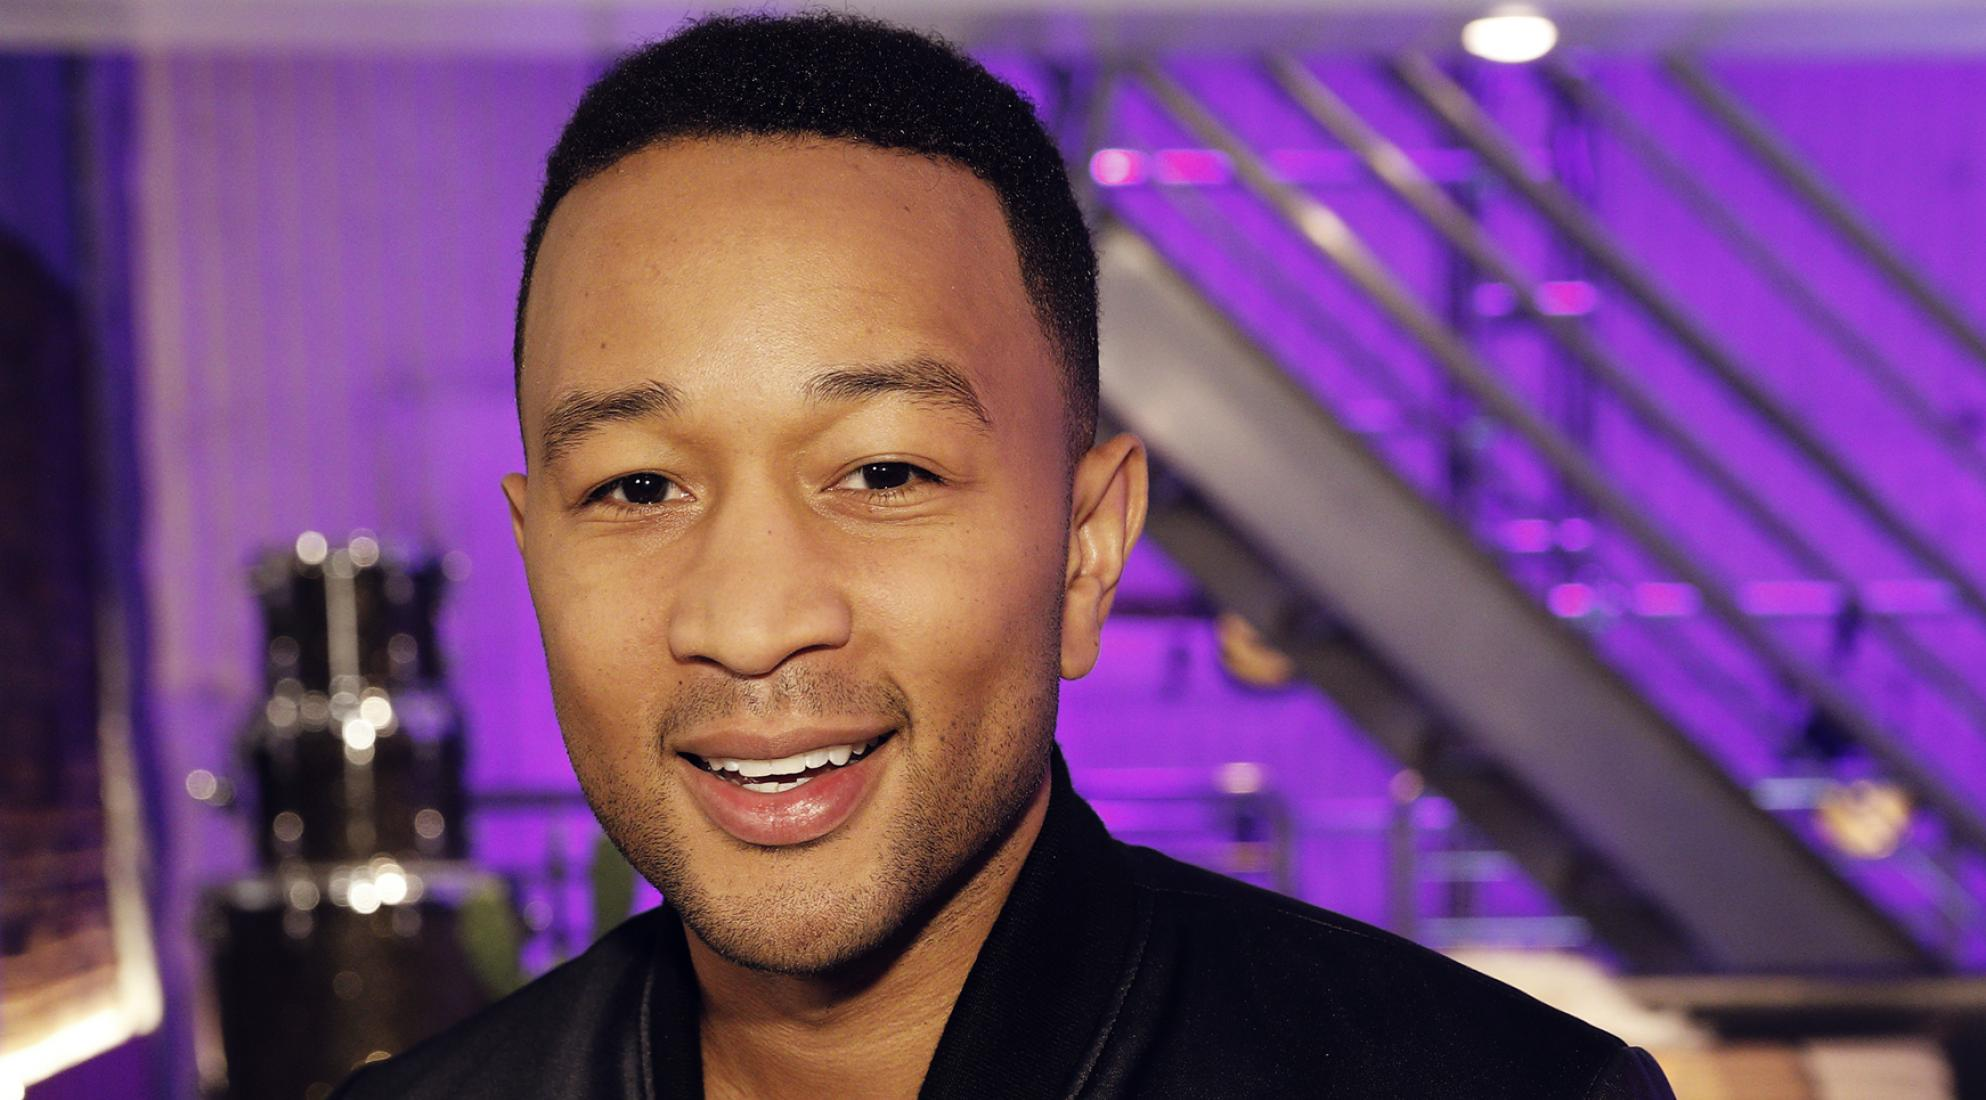 johnlegend-hero-633205670.jpg